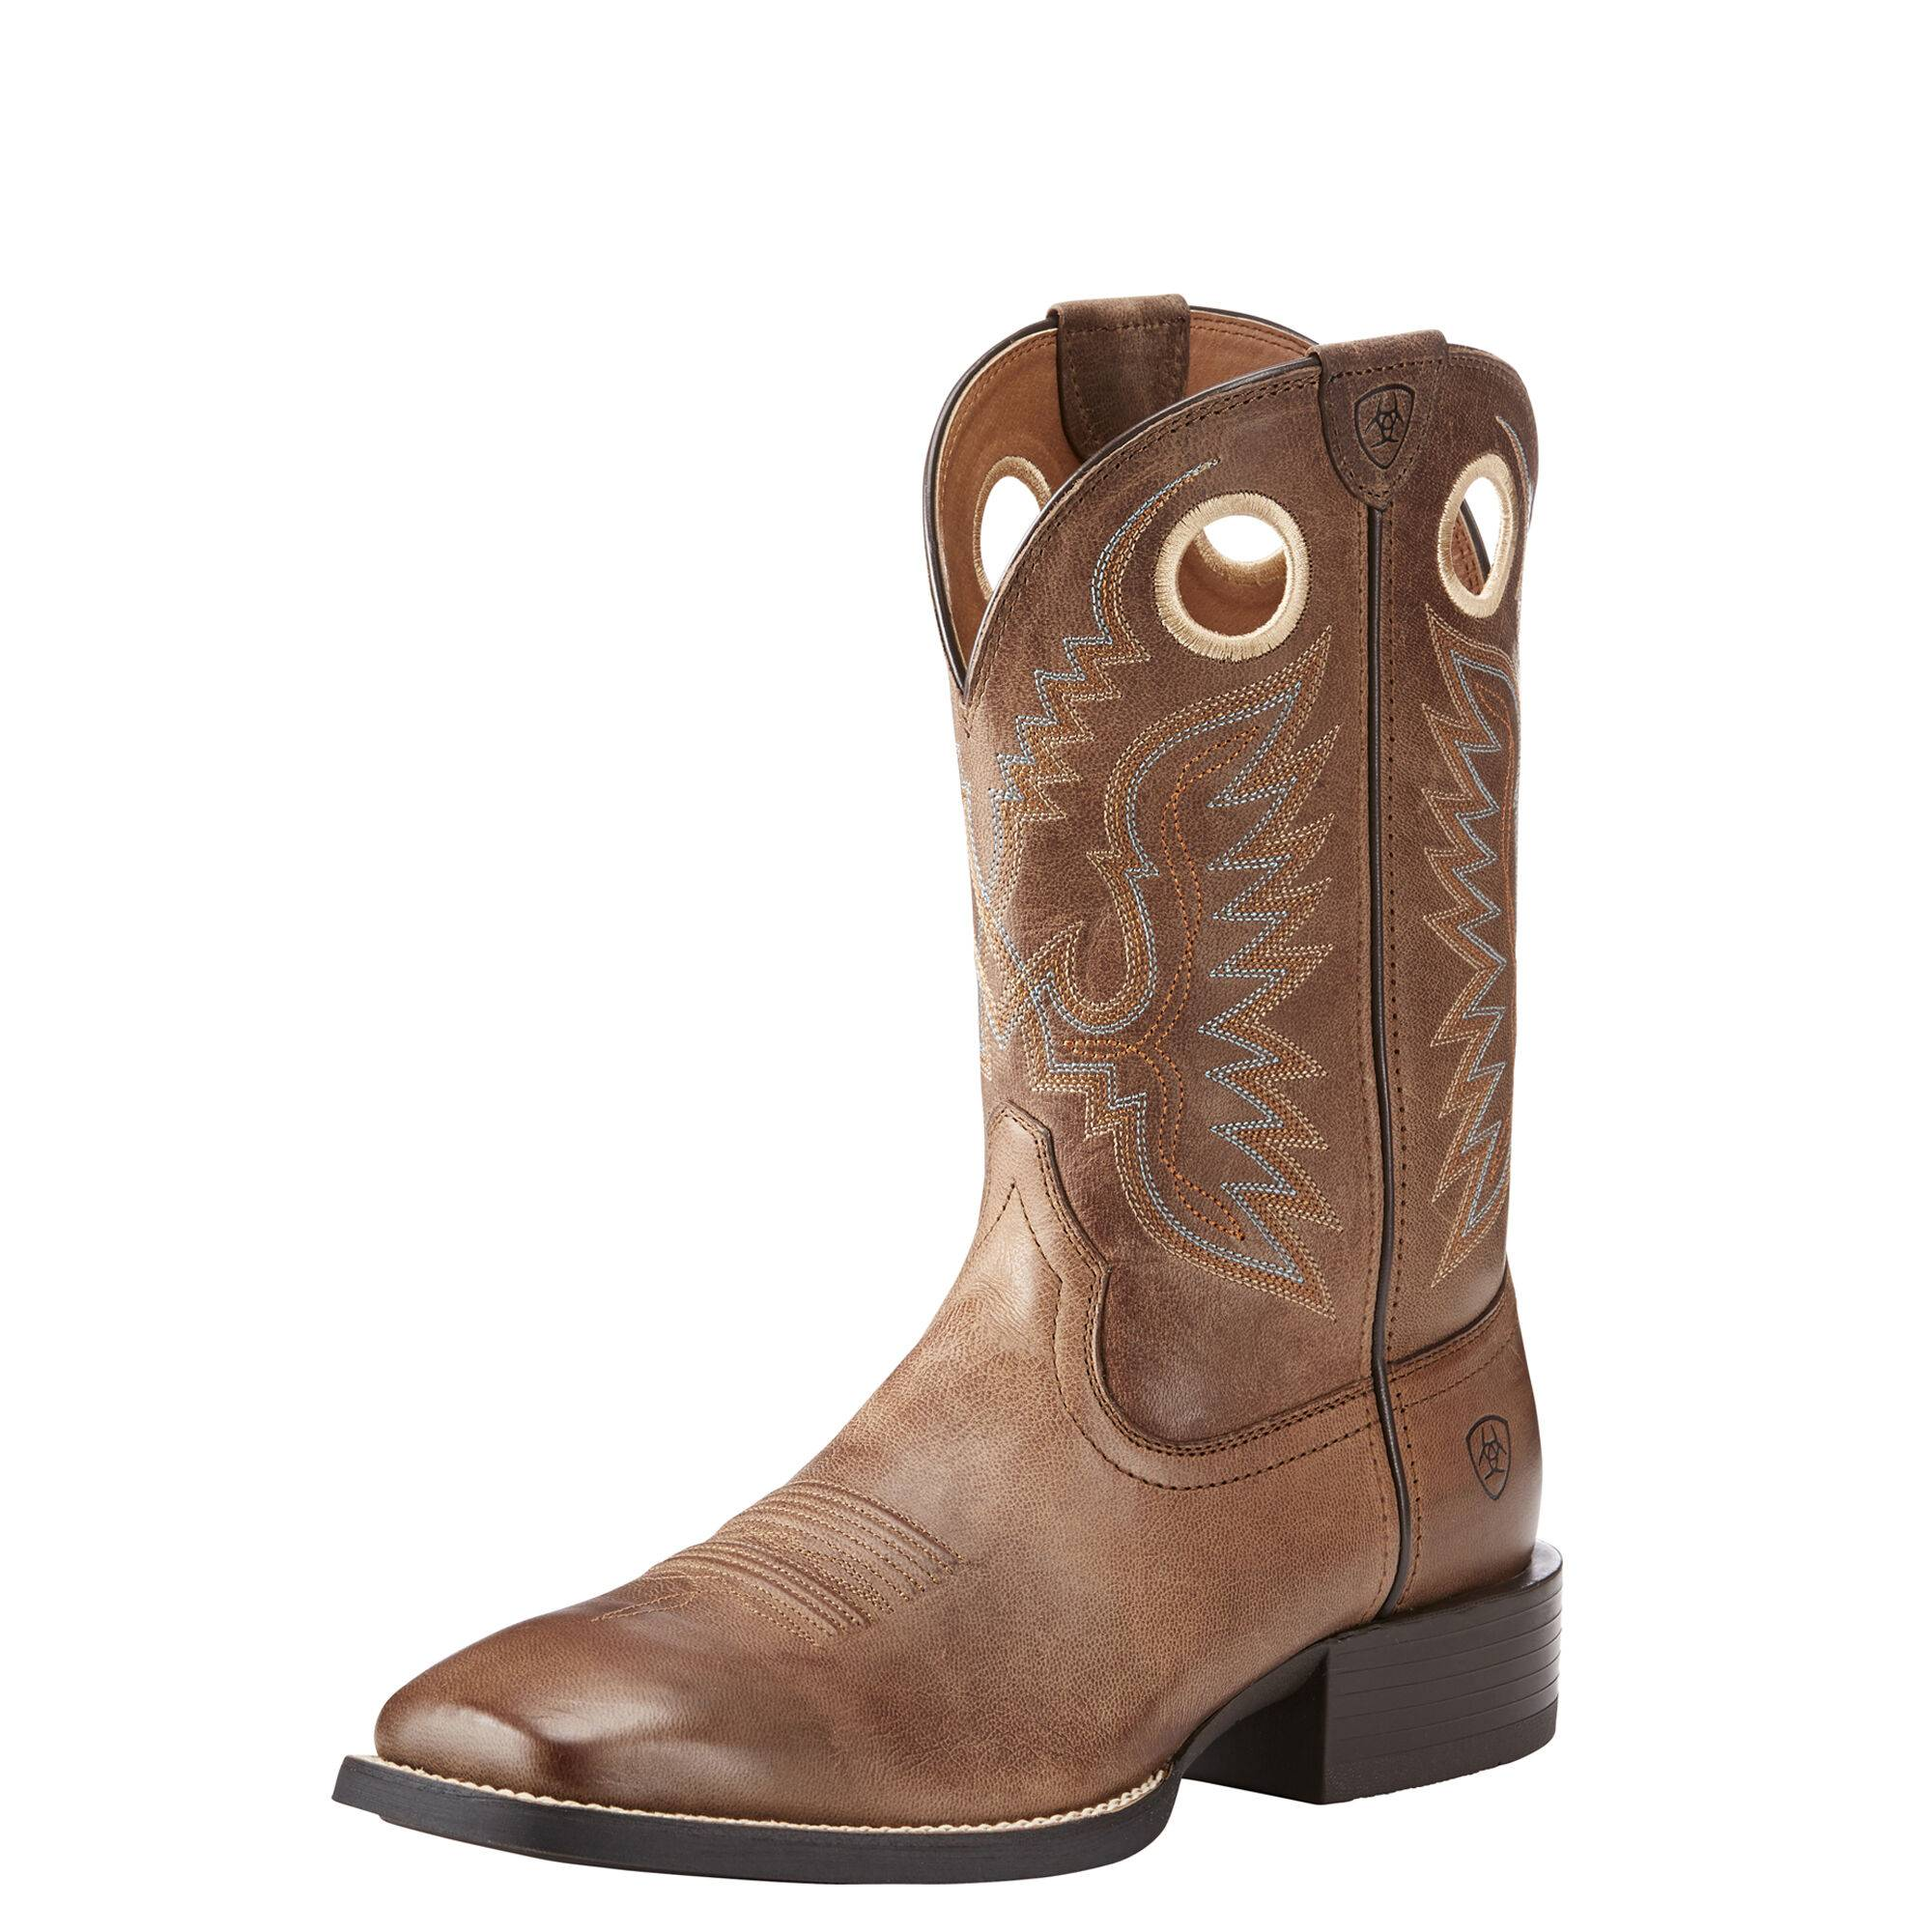 Ariat Men's Sport Ranger Western Boots in Roasted Brown Leather, Size 9 EE / Wide by Ariat